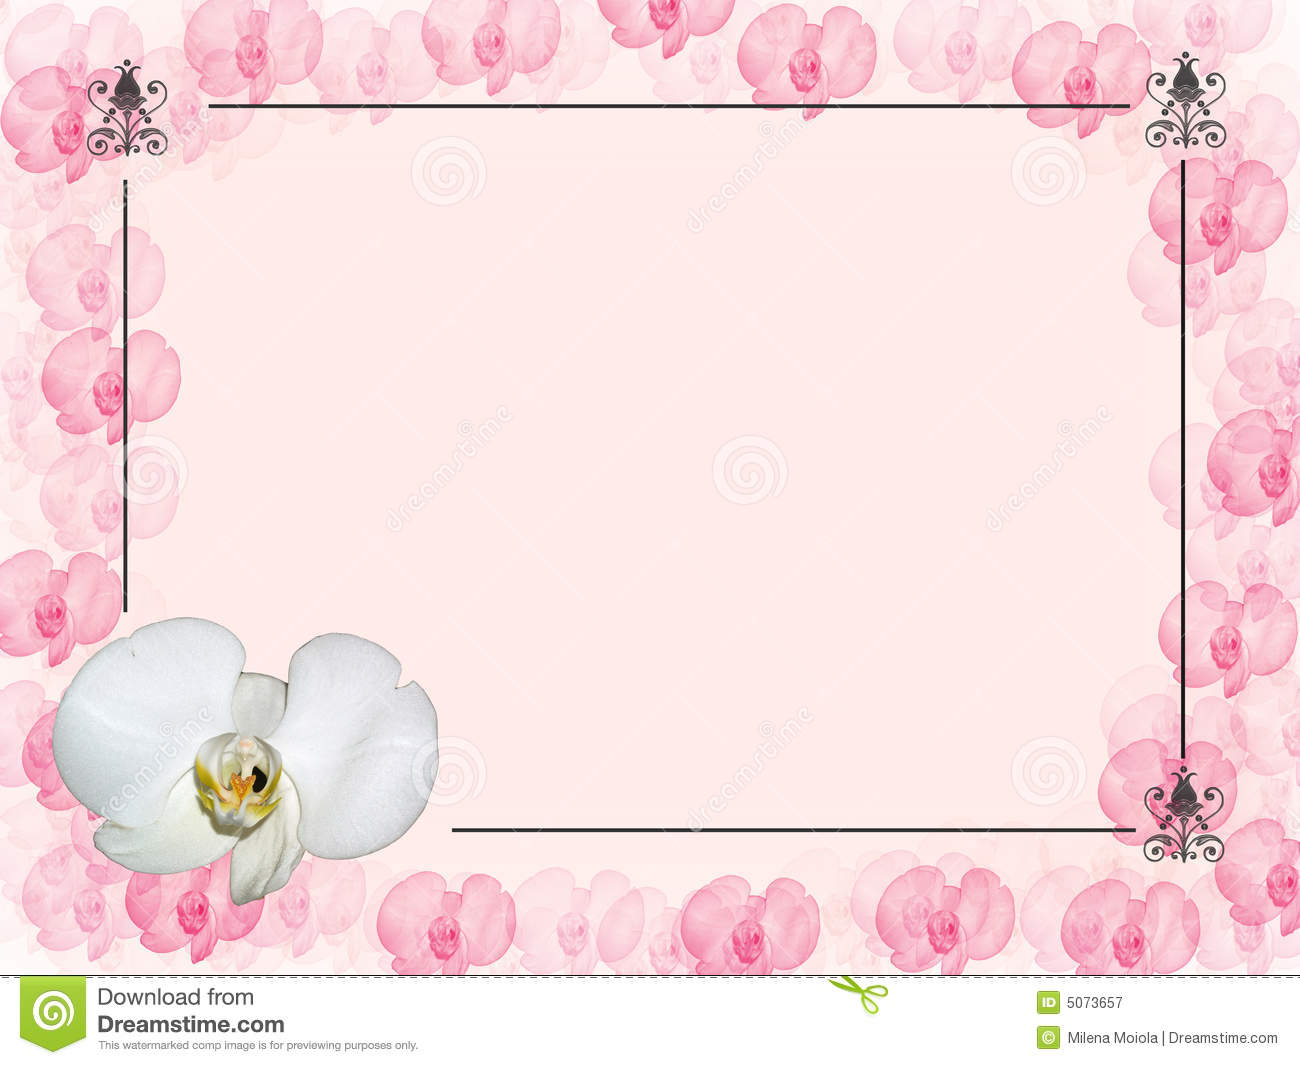 Floral Designs with Orchids